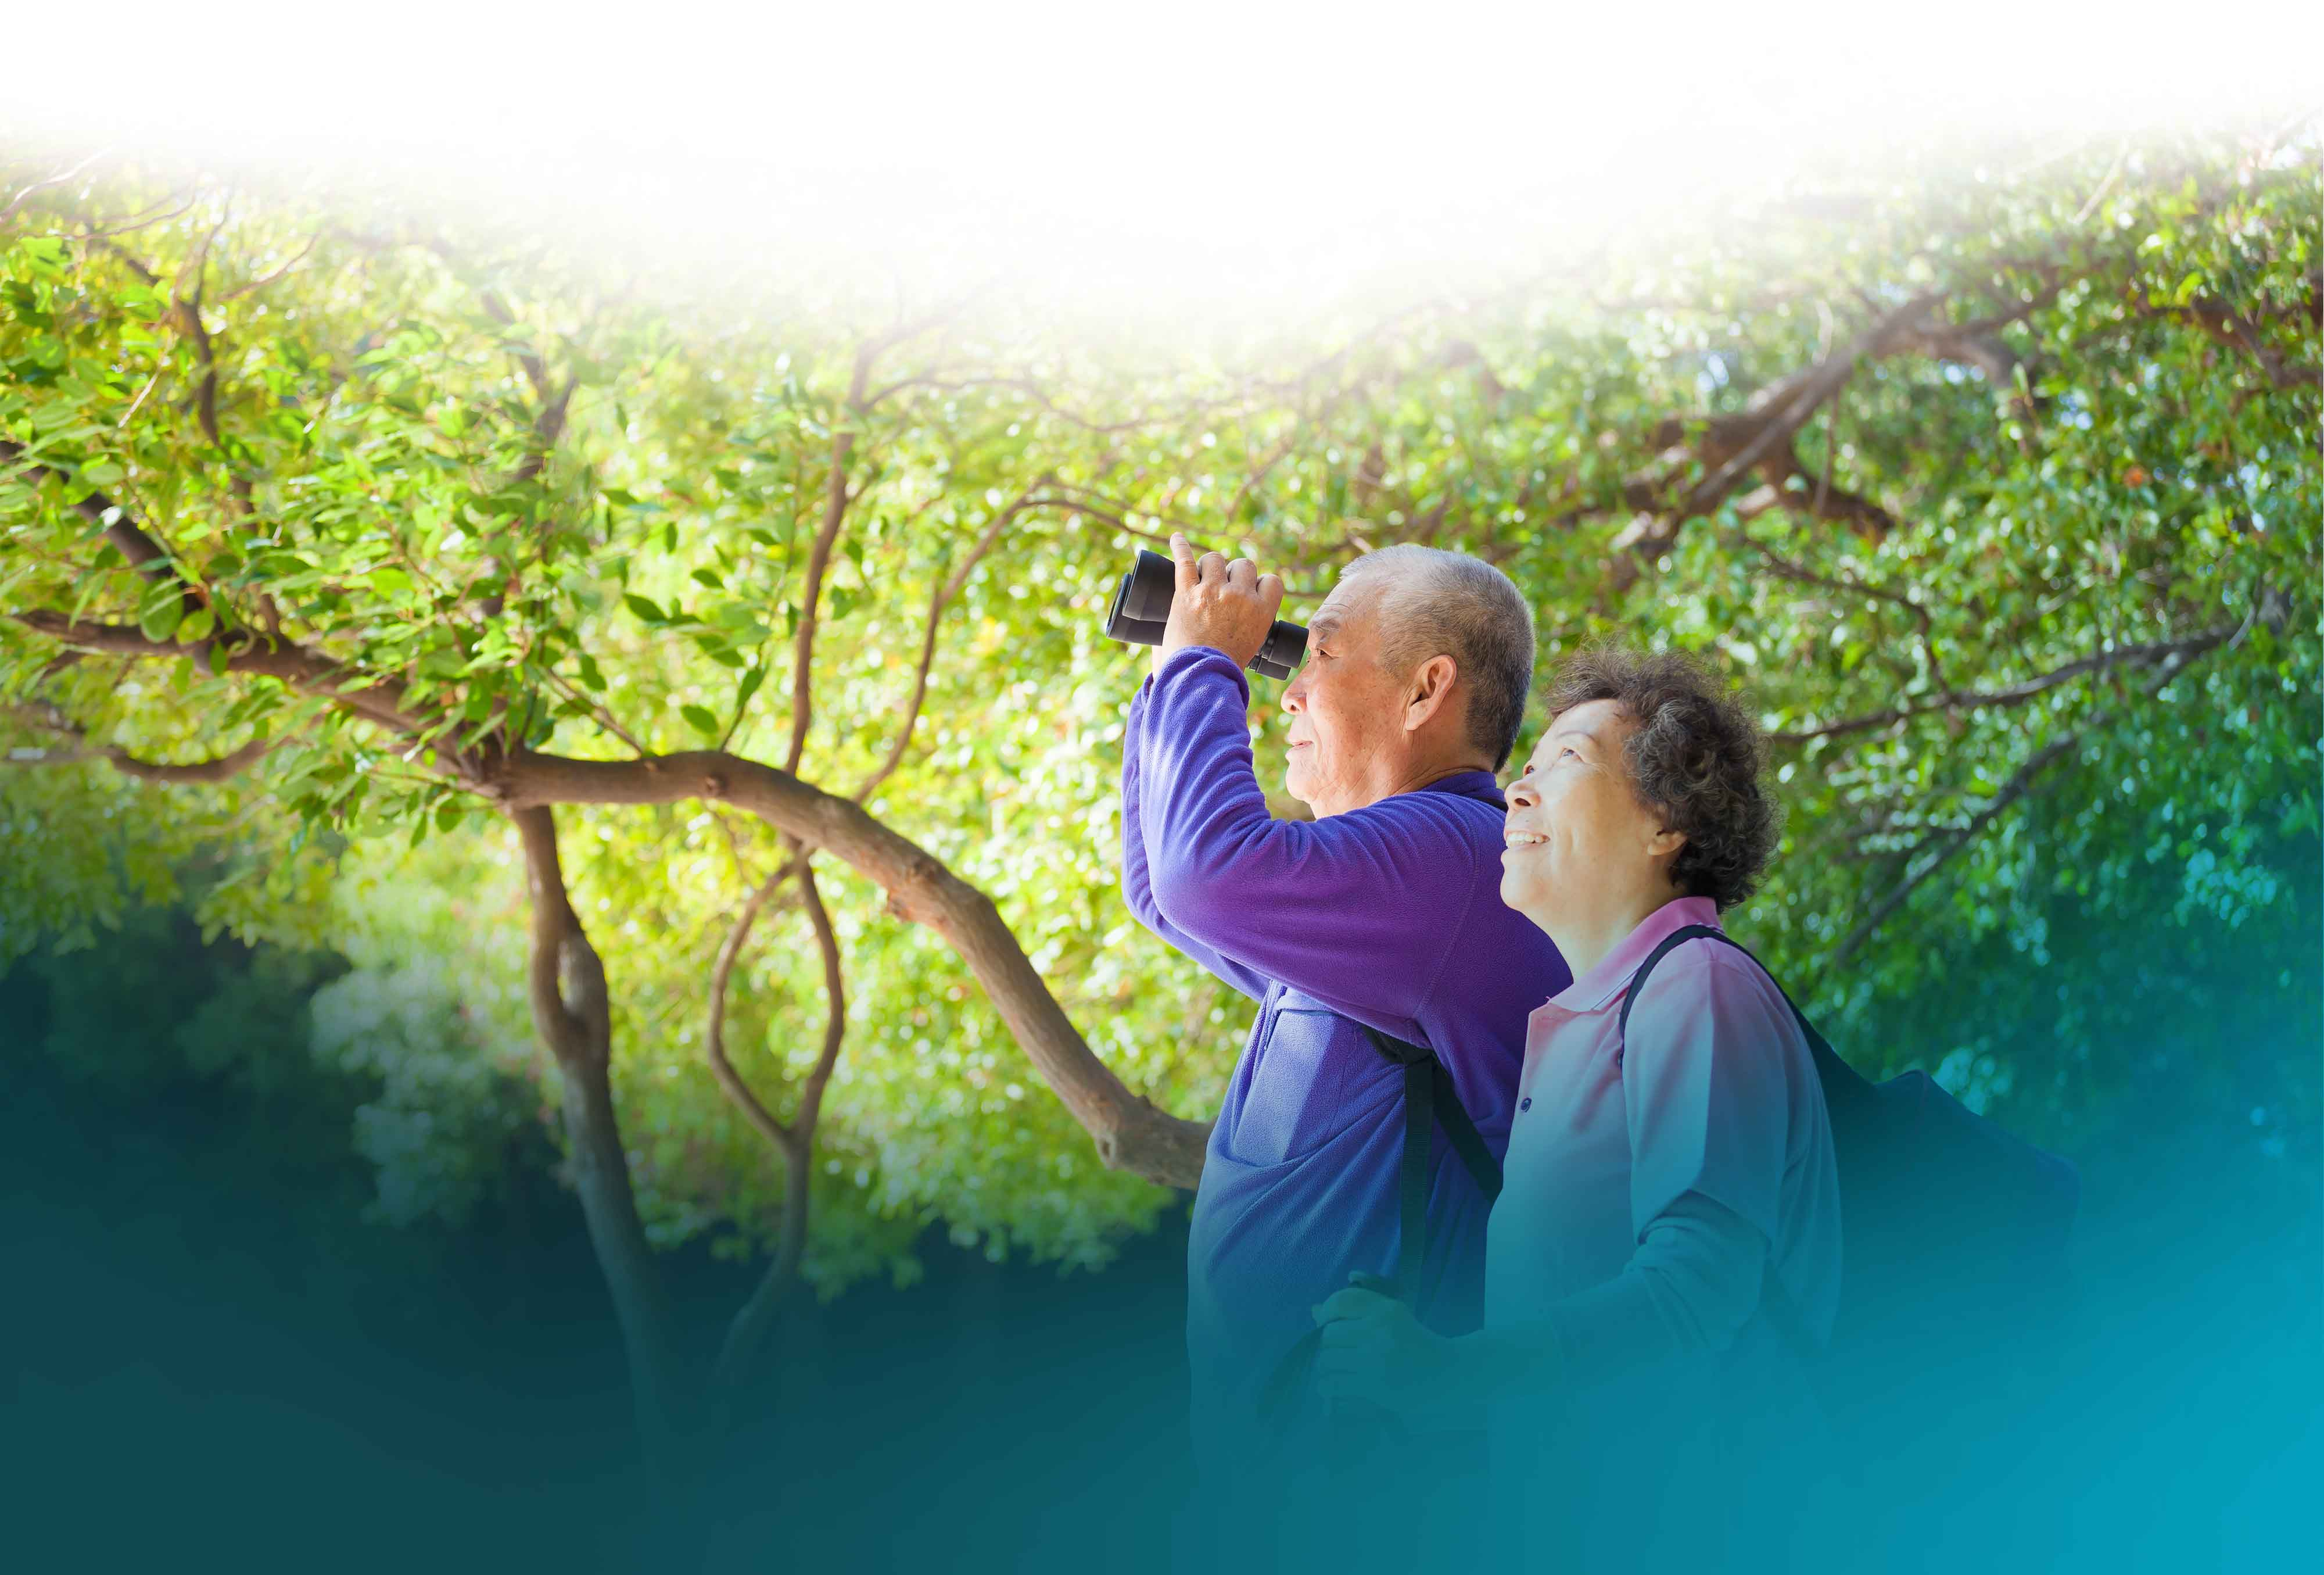 Elderly couple with binoculars in nature